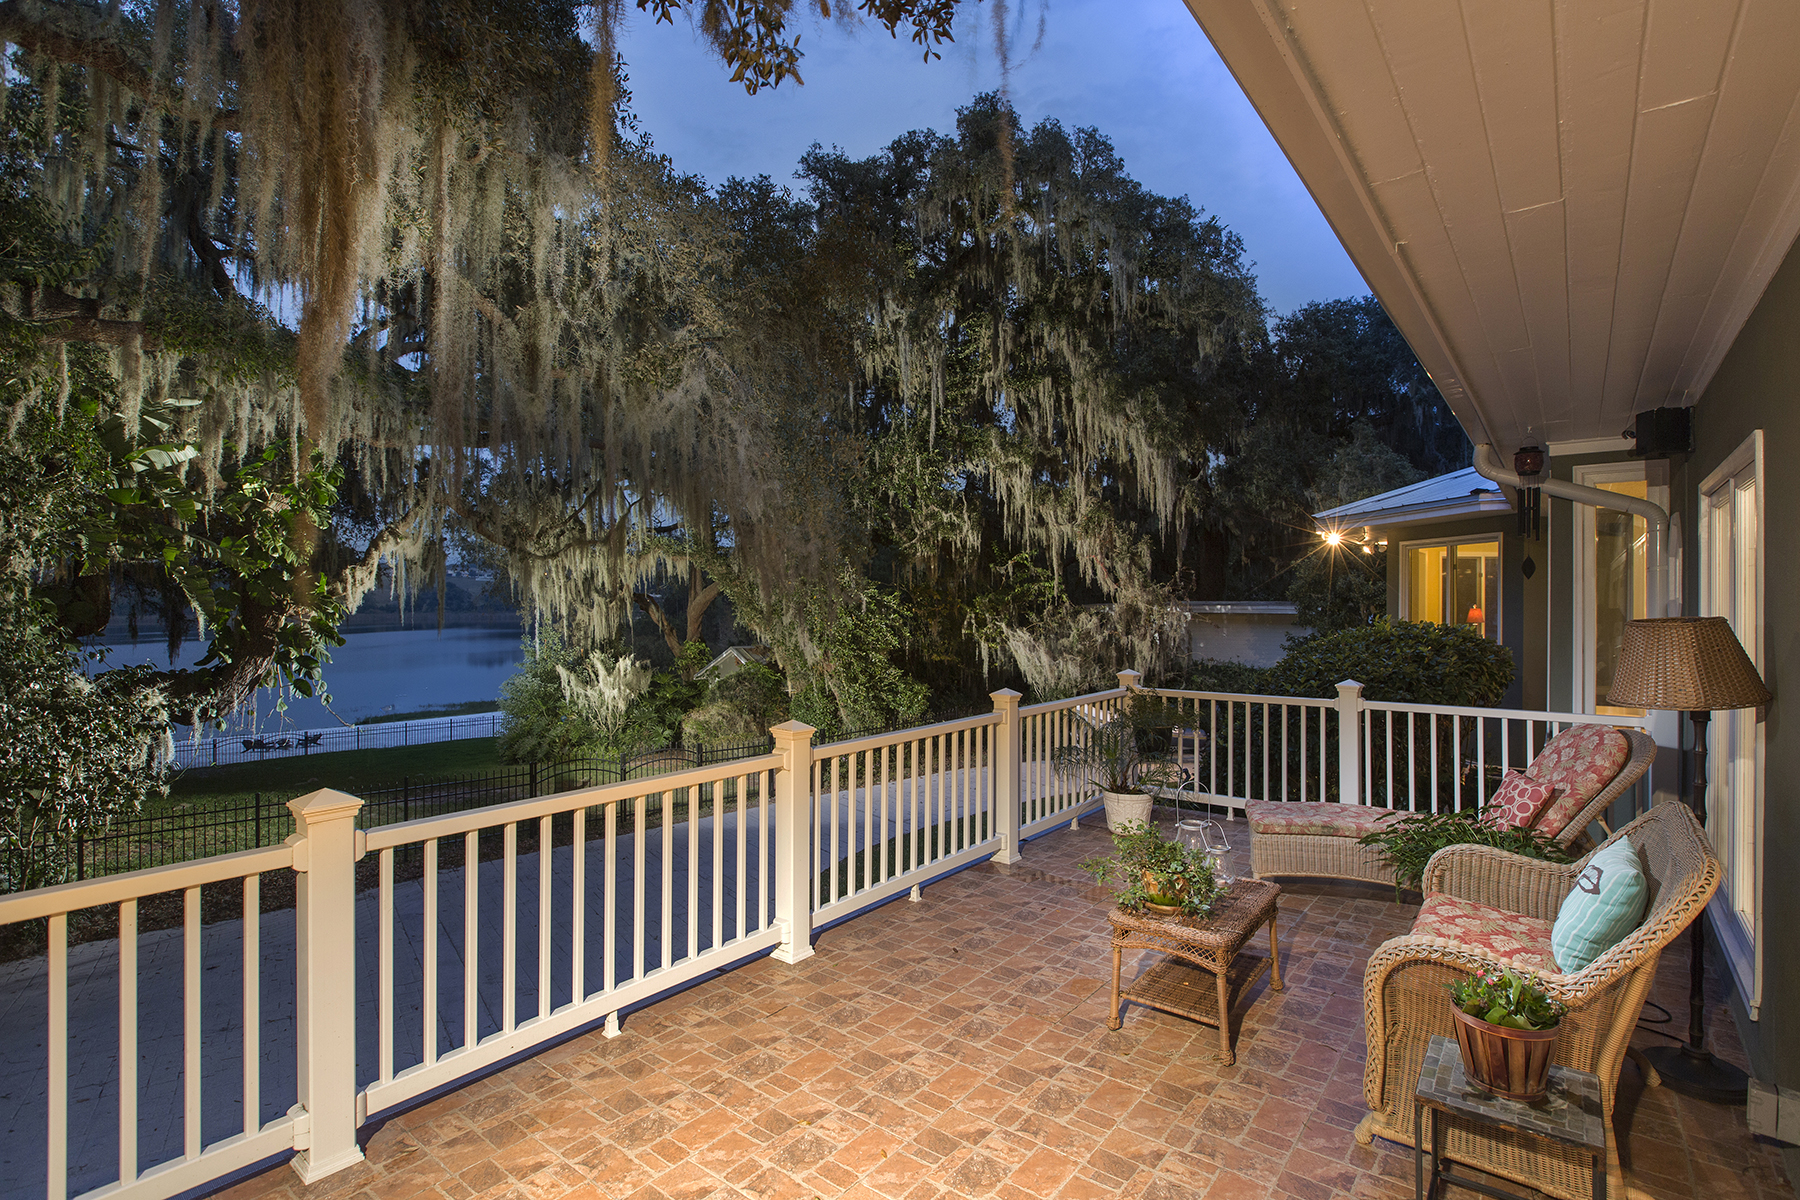 Additional photo for property listing at 1535 E Crooked Lake Dr , Eustis, FL 32726 1535 E Crooked Lake Dr Eustis, Florida 32726 Vereinigte Staaten